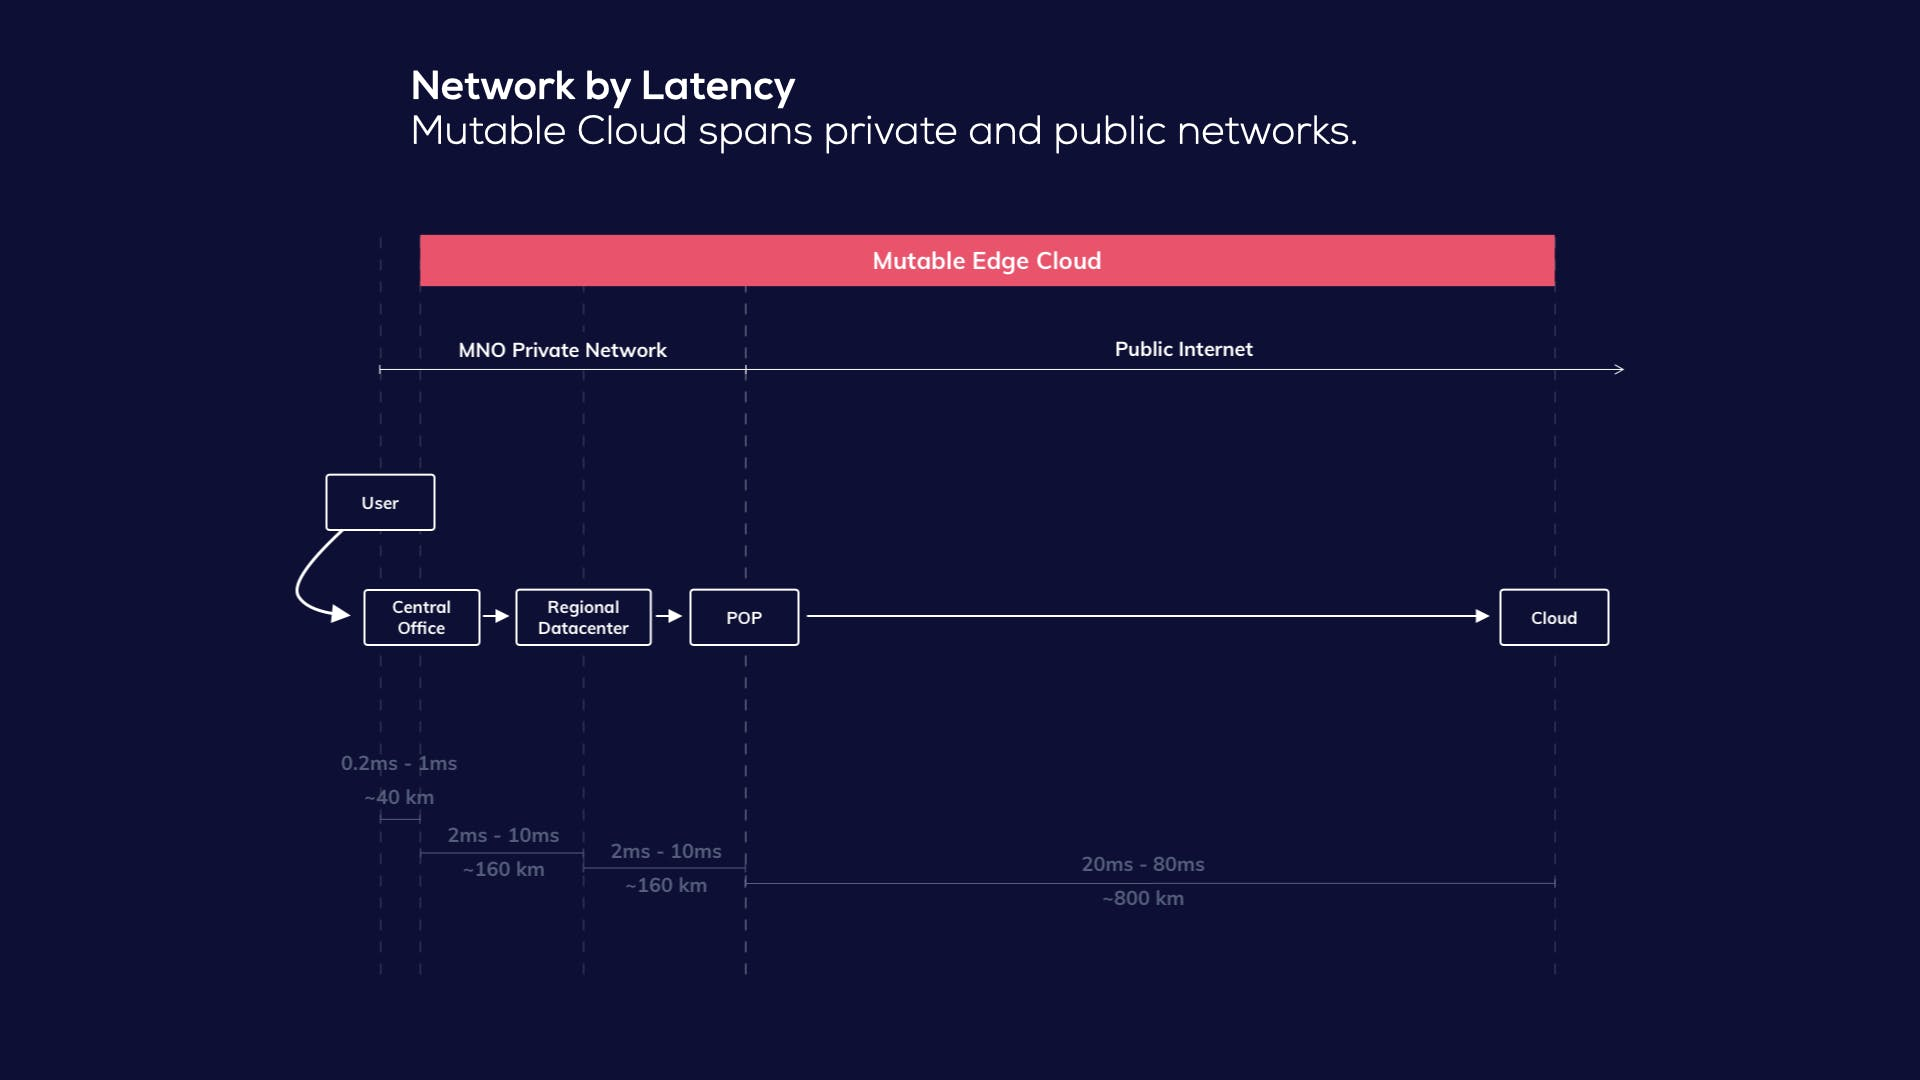 Network by Latency - Mutable Cloud spans private and public networks.